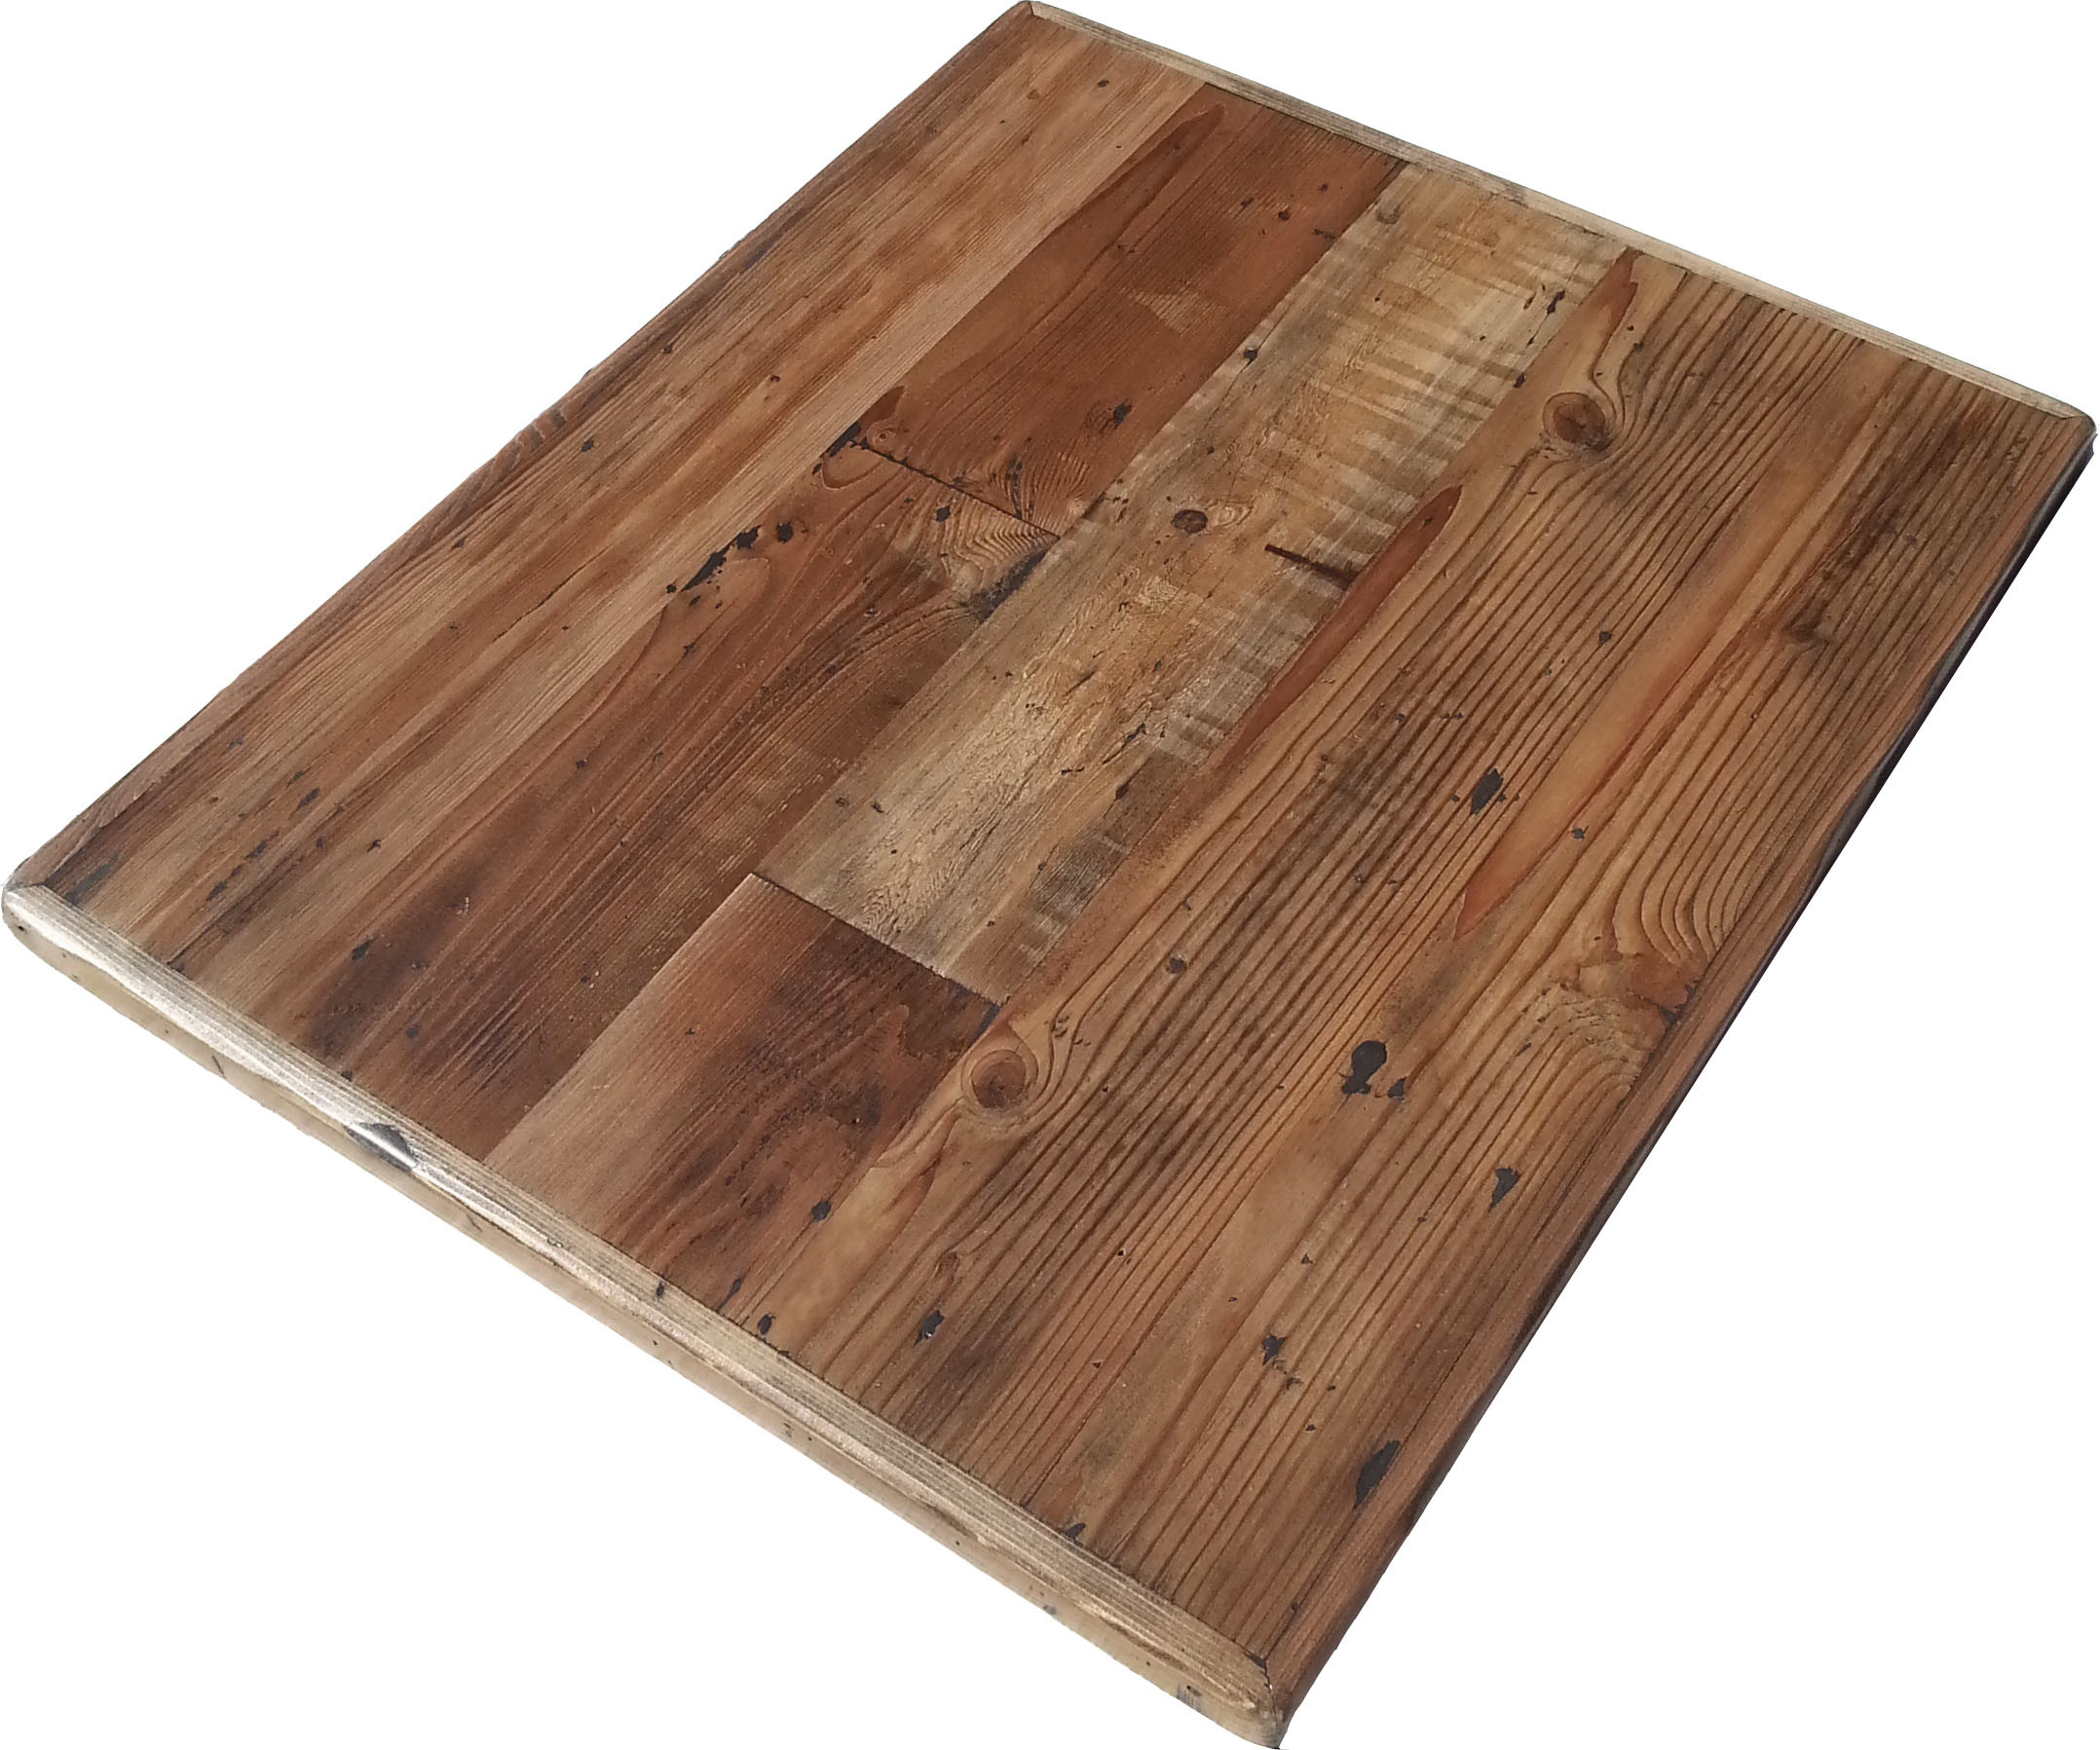 Cafe Table Tops Reclaimed Wood Table Tops Restaurant And Cafe Supplies